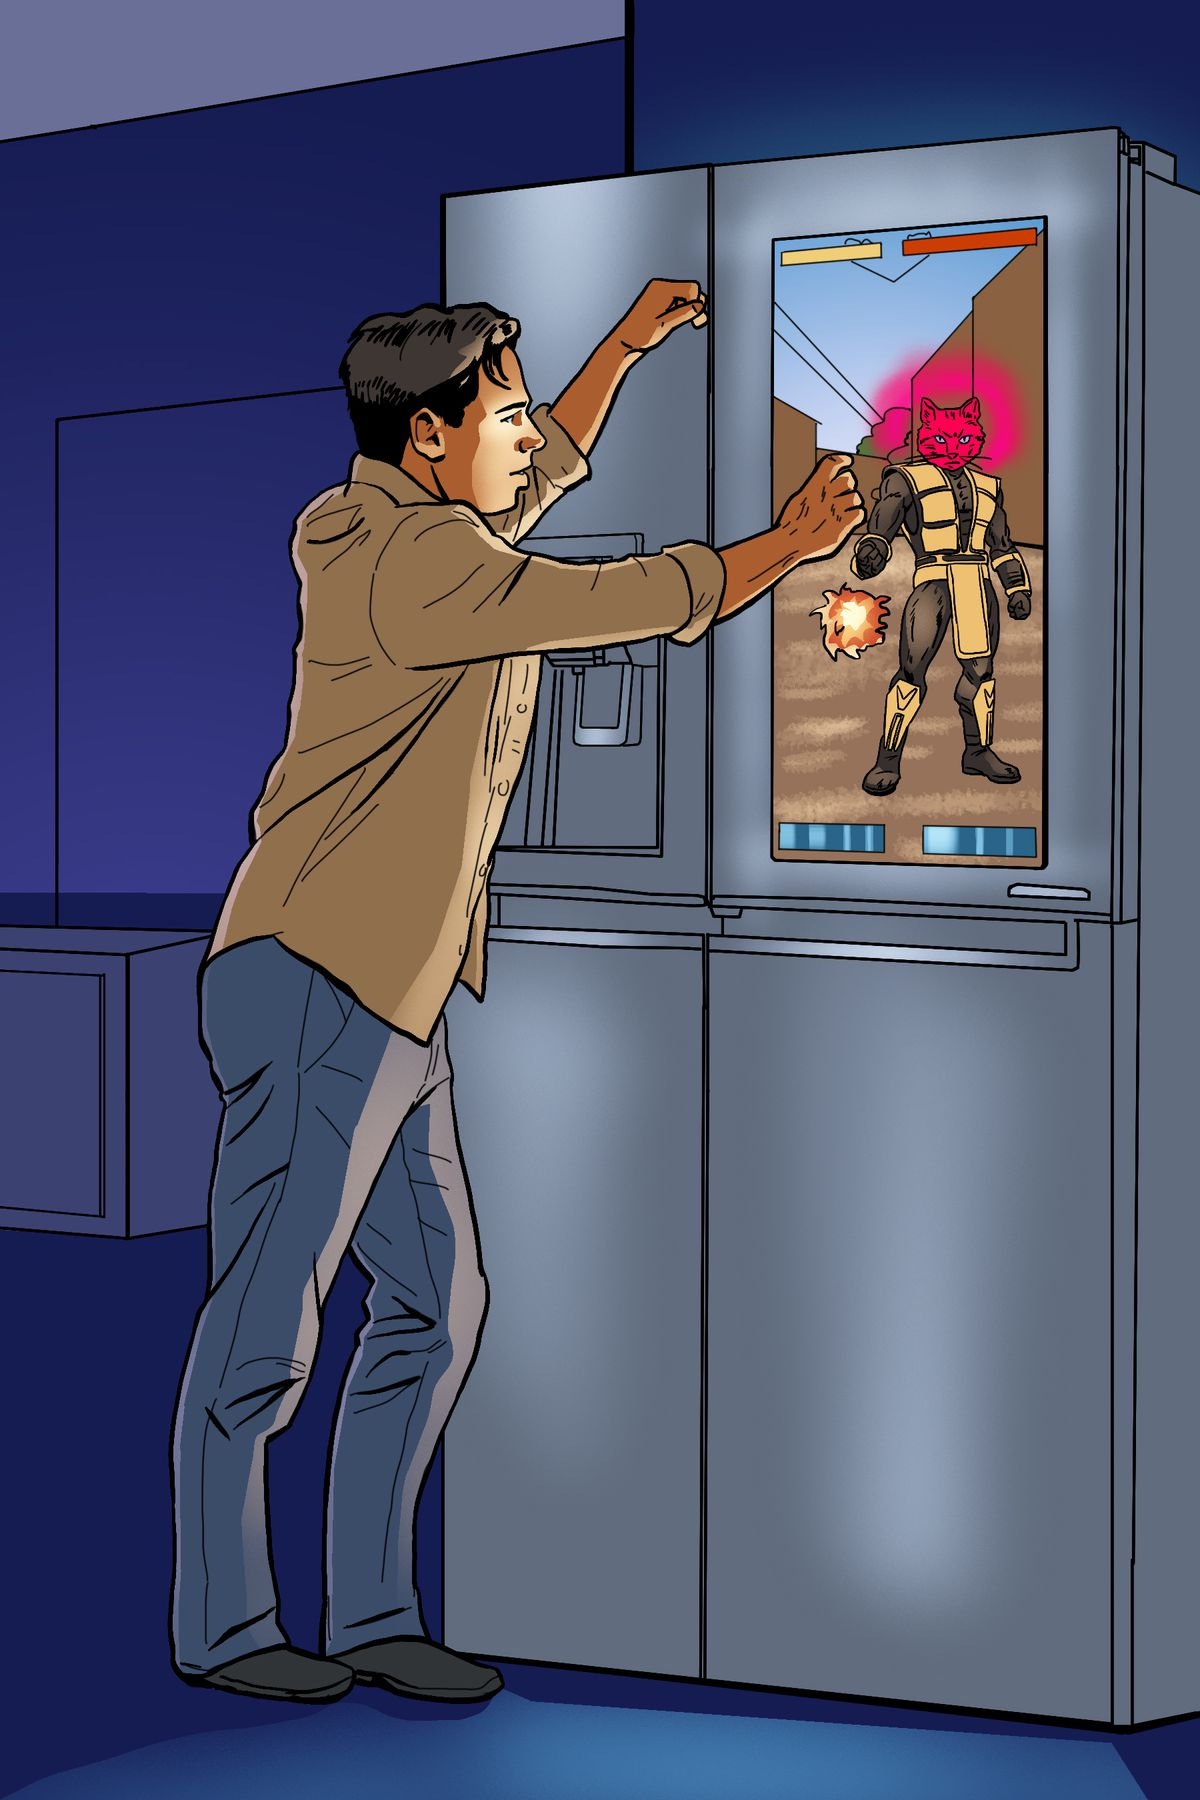 A gamer leans against a refrigerator casually, interacting with a game on its touchscreen that features a pink cat warrior.